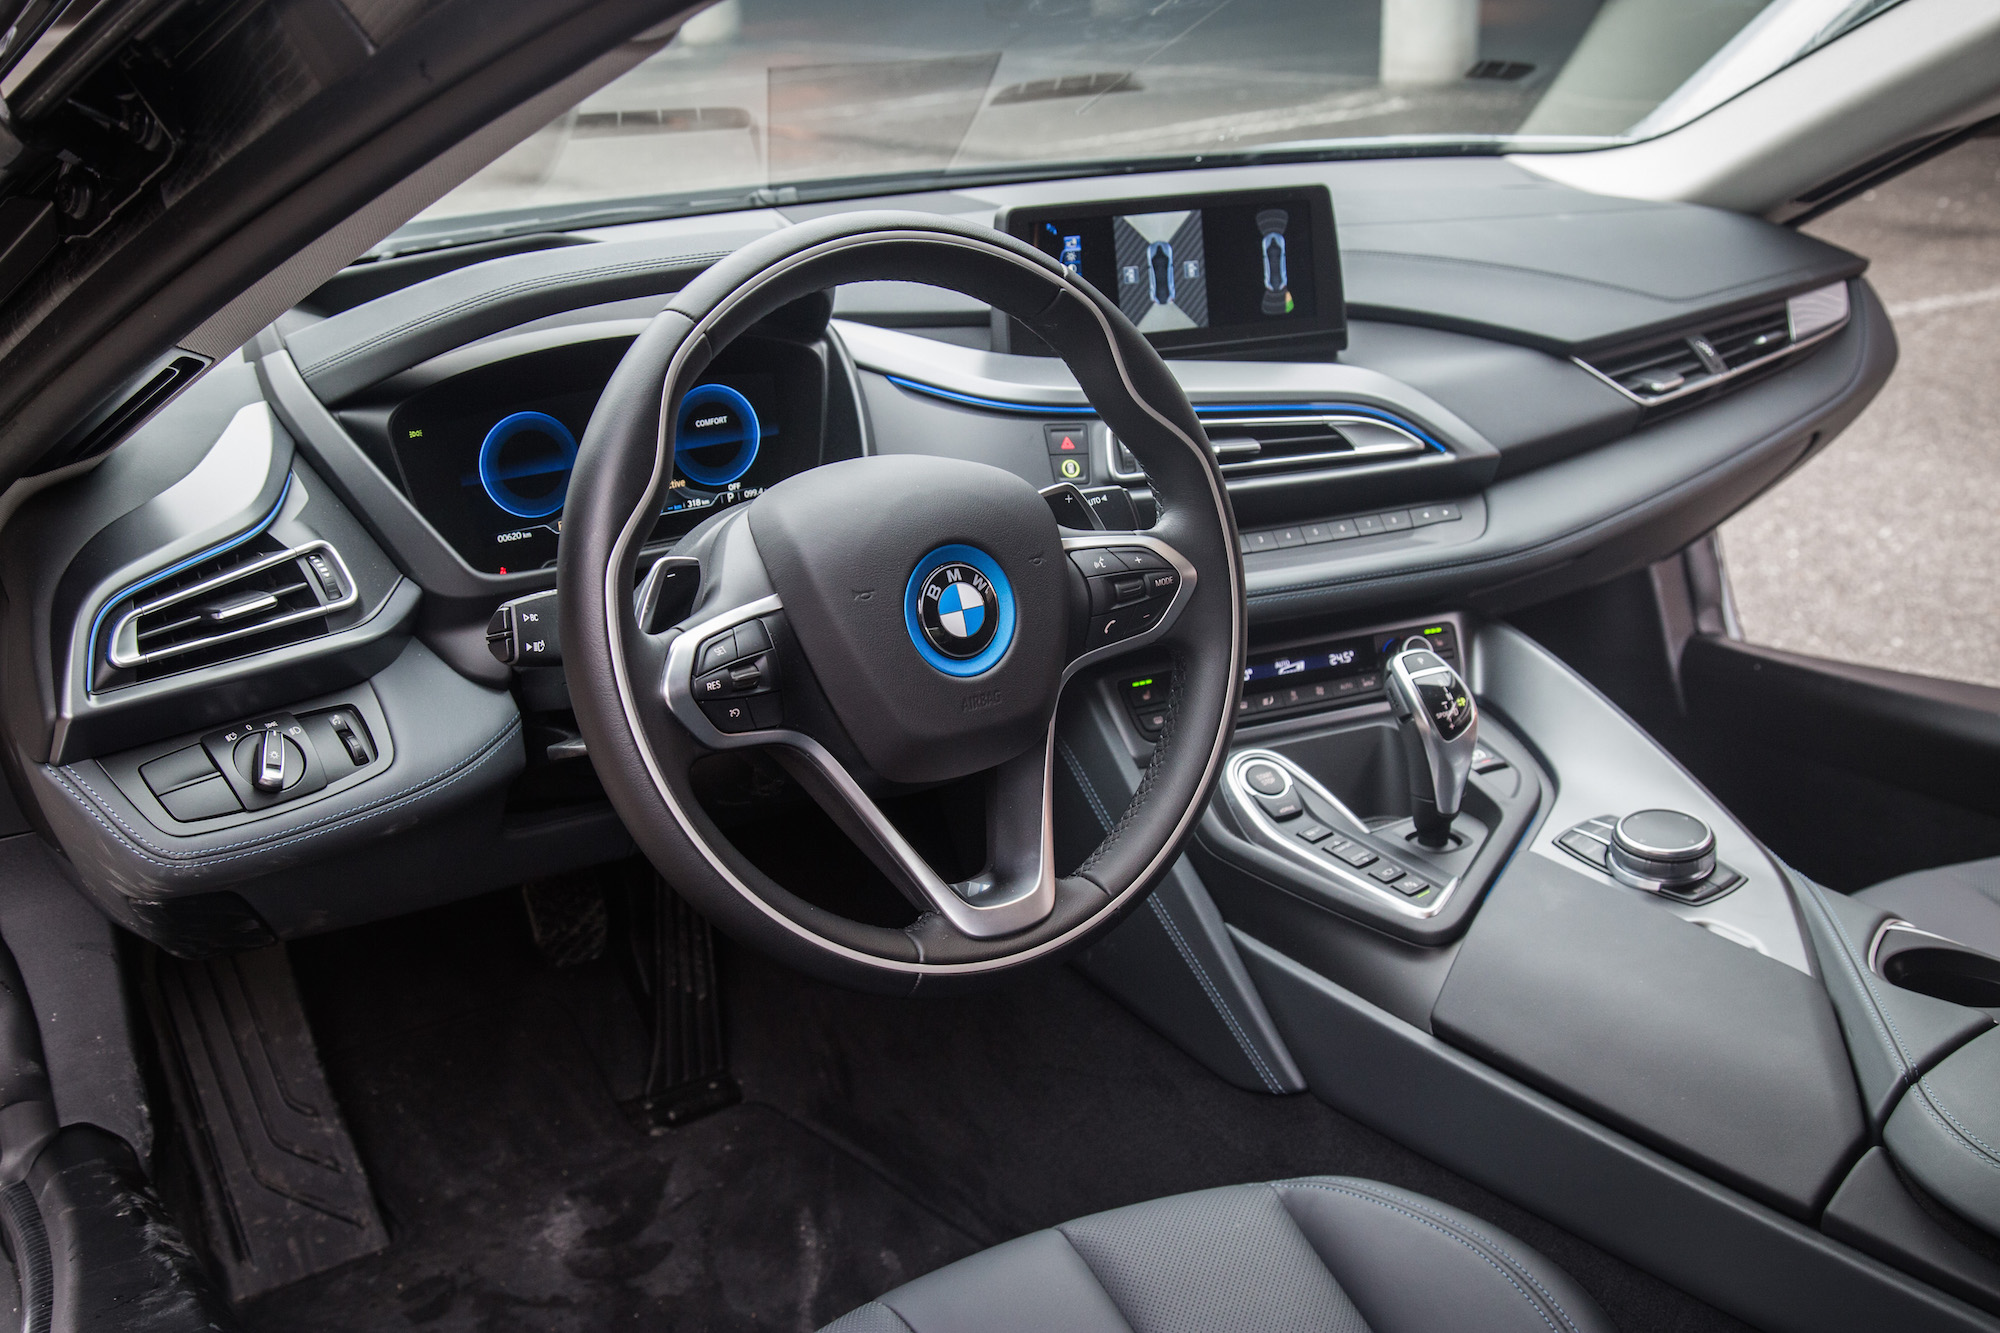 Superior 2017 BMW I8 Carpo Dark Black Interior Leather ...